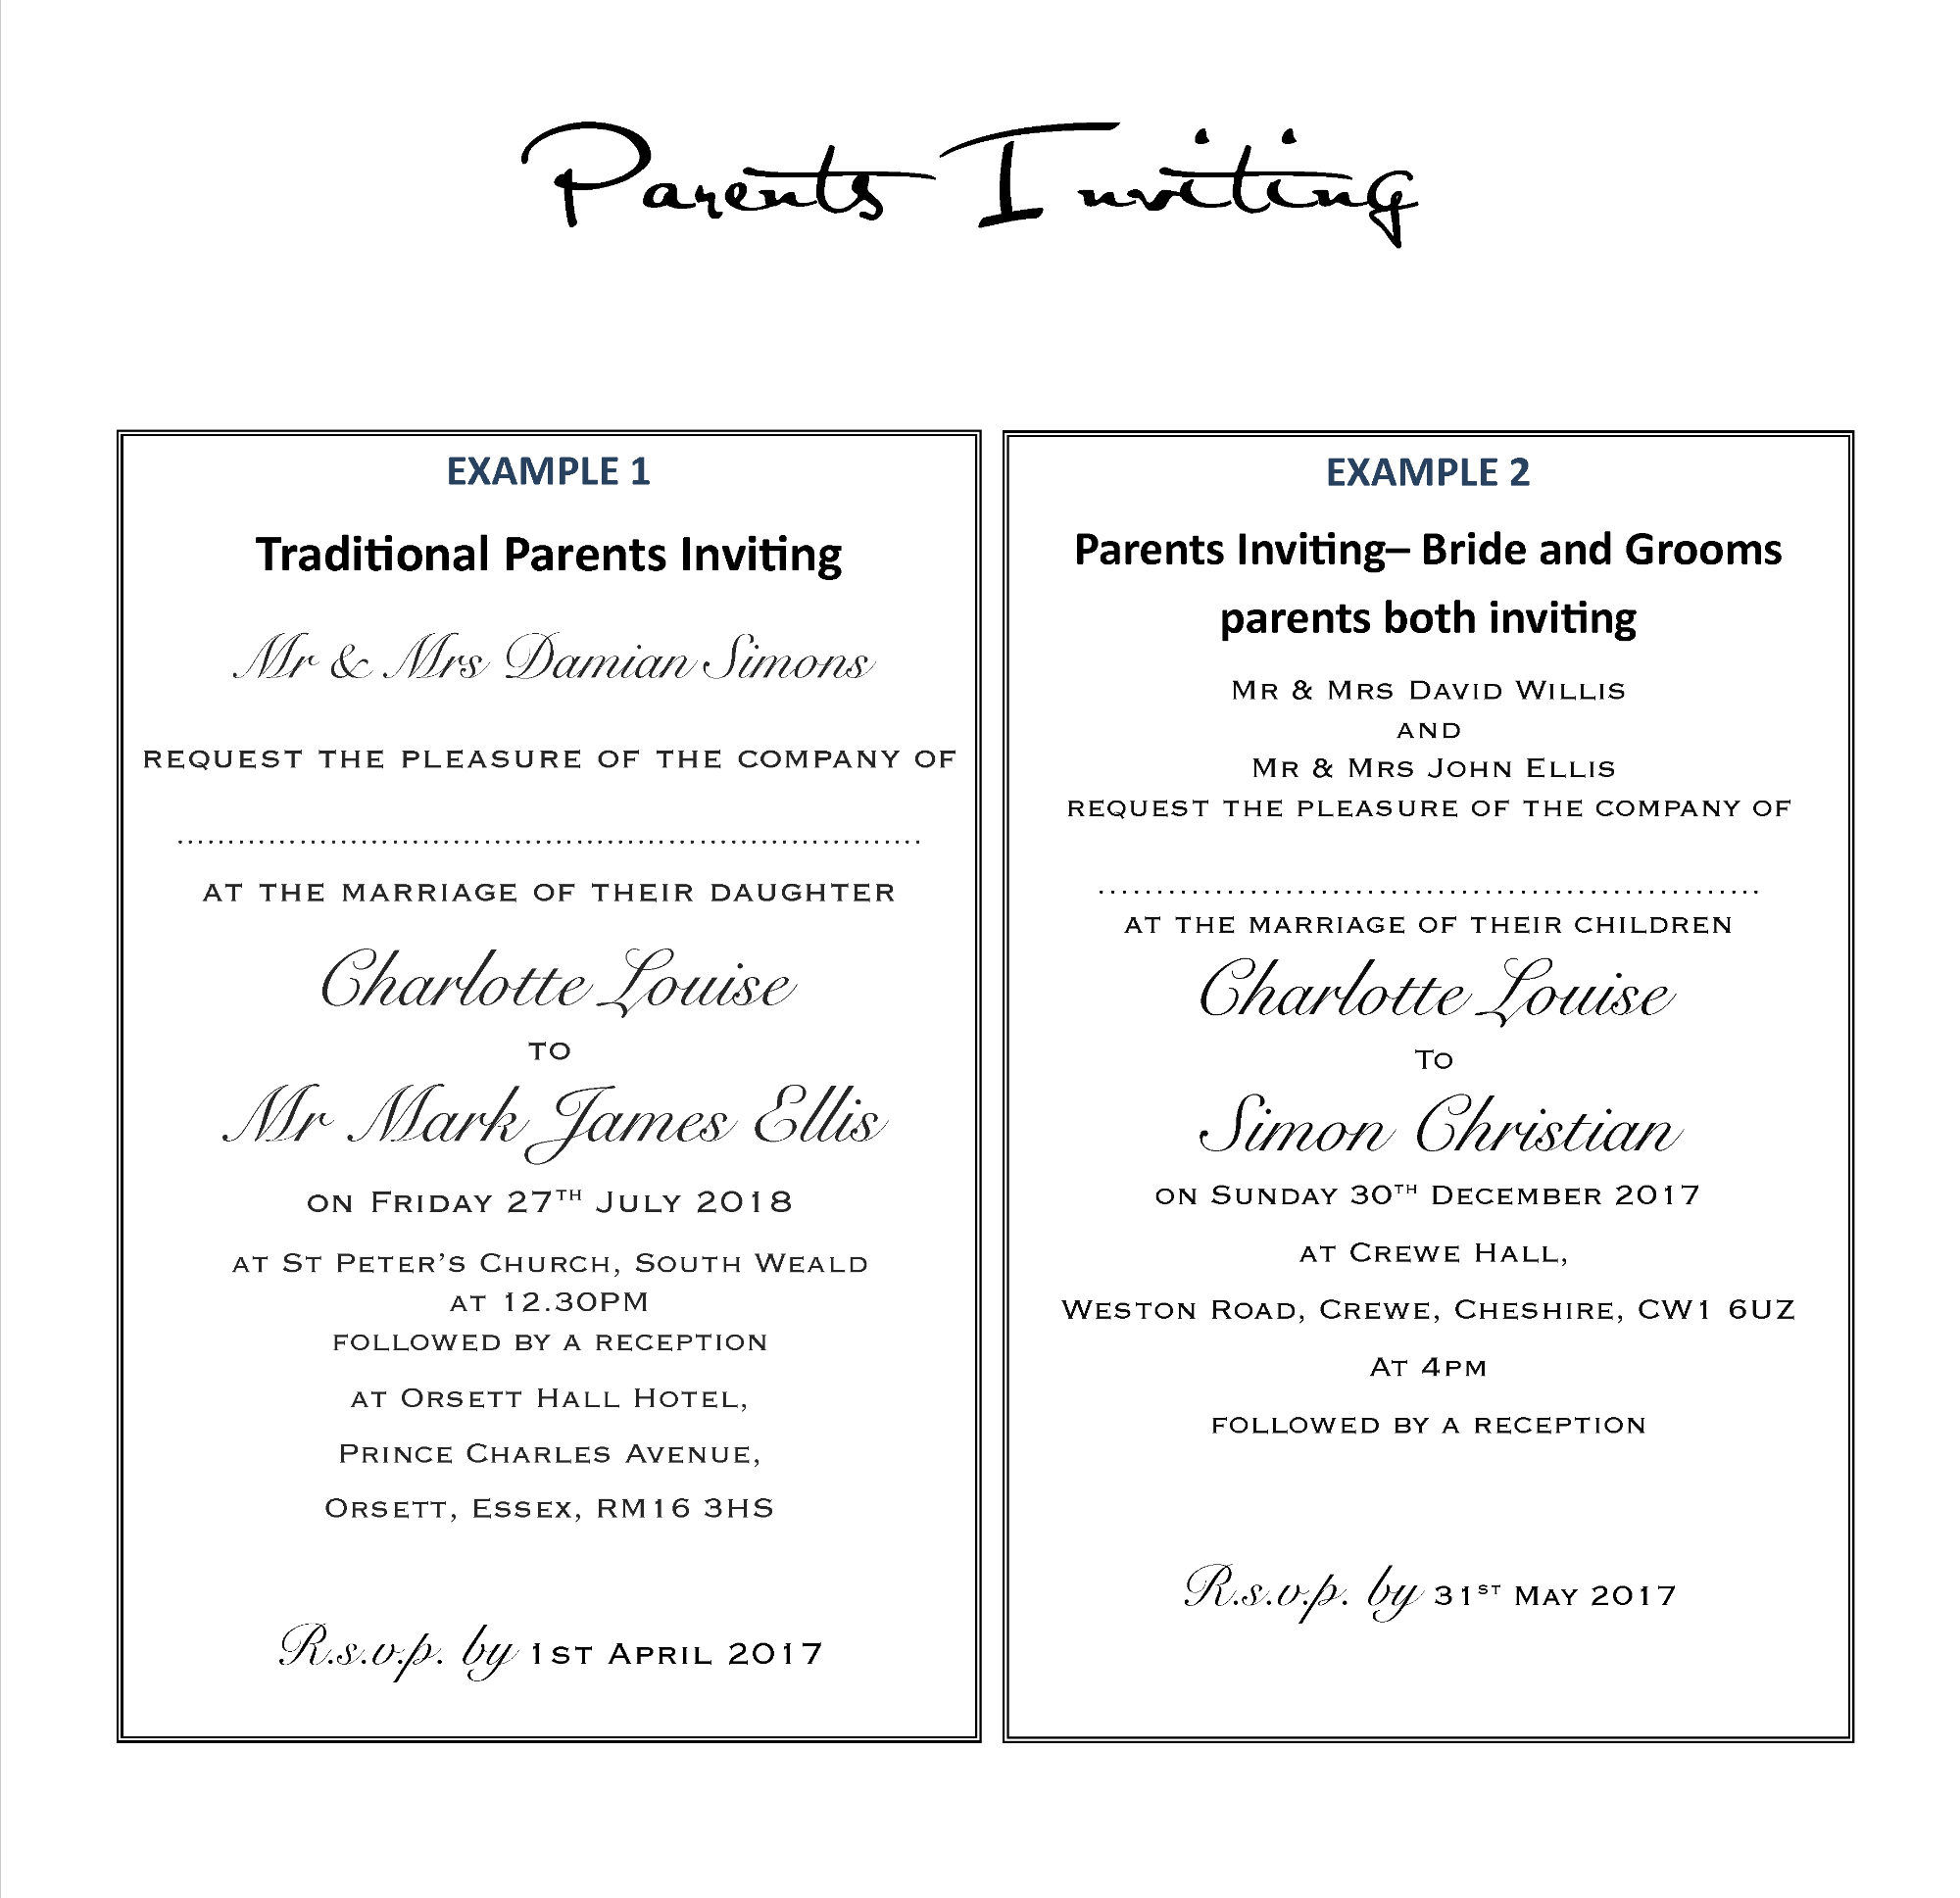 Traditional parents inviting wording for invitations